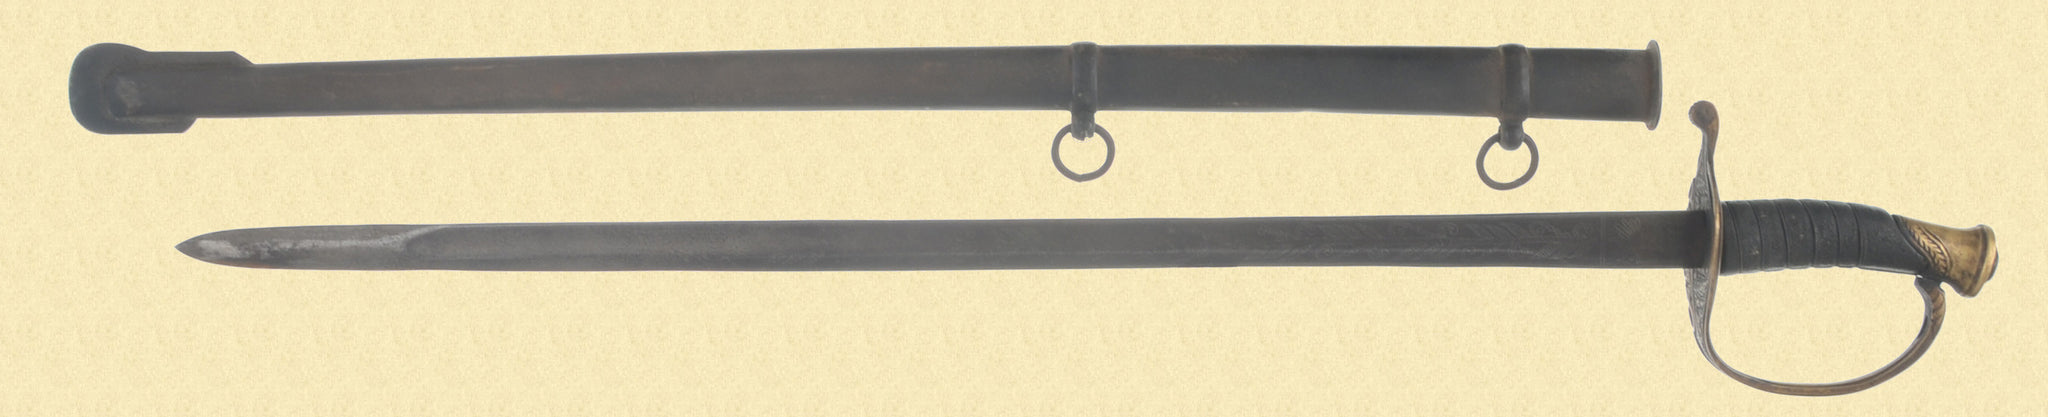 FAYETTEVILLE ARMORY SWORD